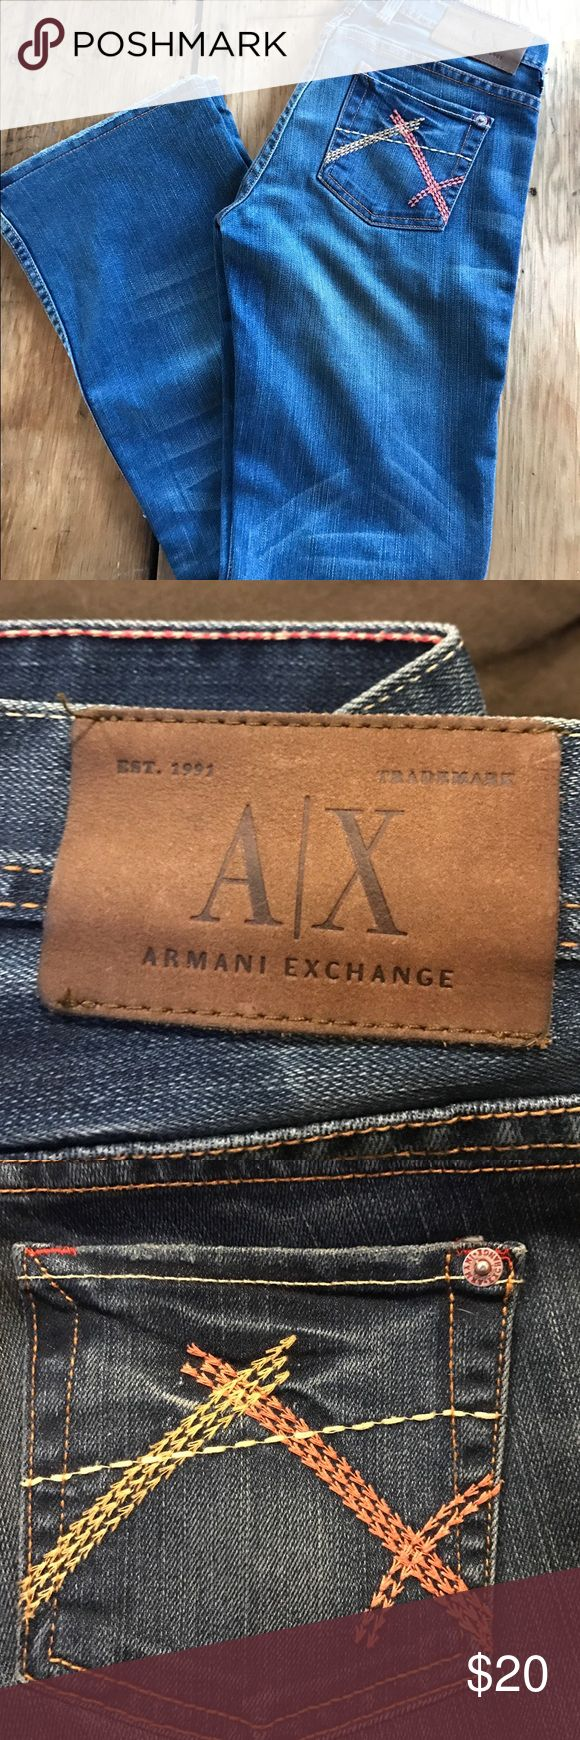 Armani Exchange jeans These like new Armani Exchange jeans come from a smoke and pet free home. Slip these on with a pair of boots and you'll feel like you are walking to a cafe during fashion week in Milan. Fine Italian craftsmanship at its best. Enjoy! Ciao Bella! A/X Armani Exchange Jeans Boot Cut